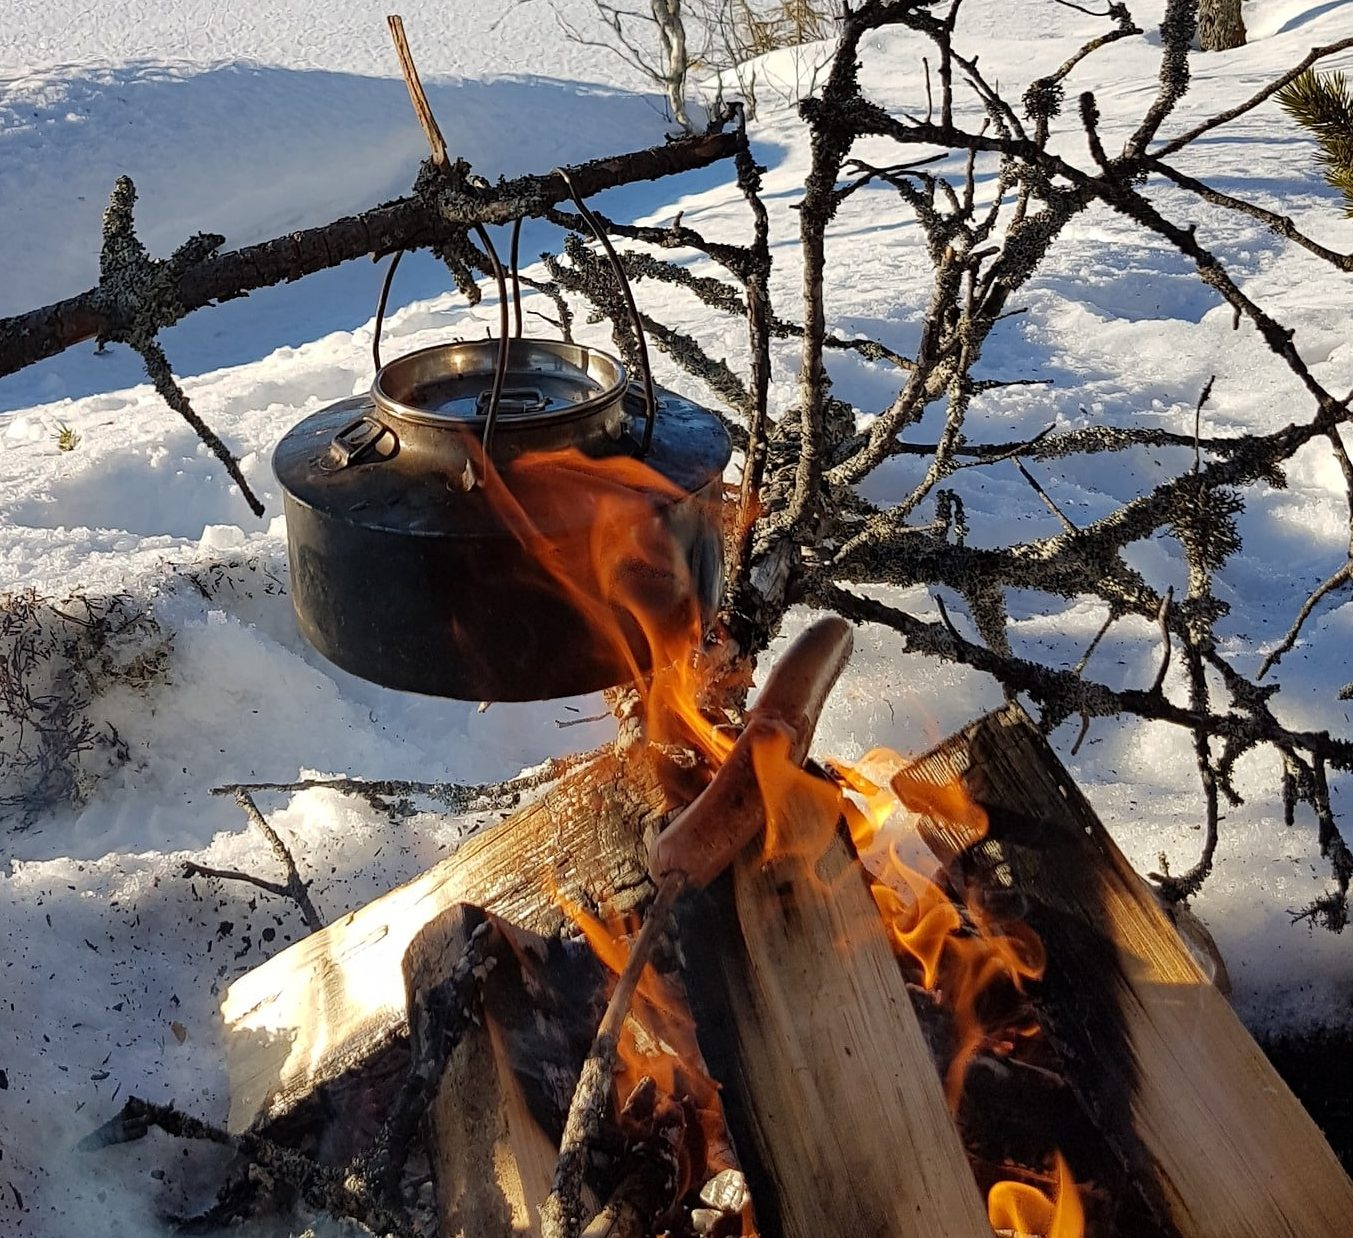 How to have coffee while camping